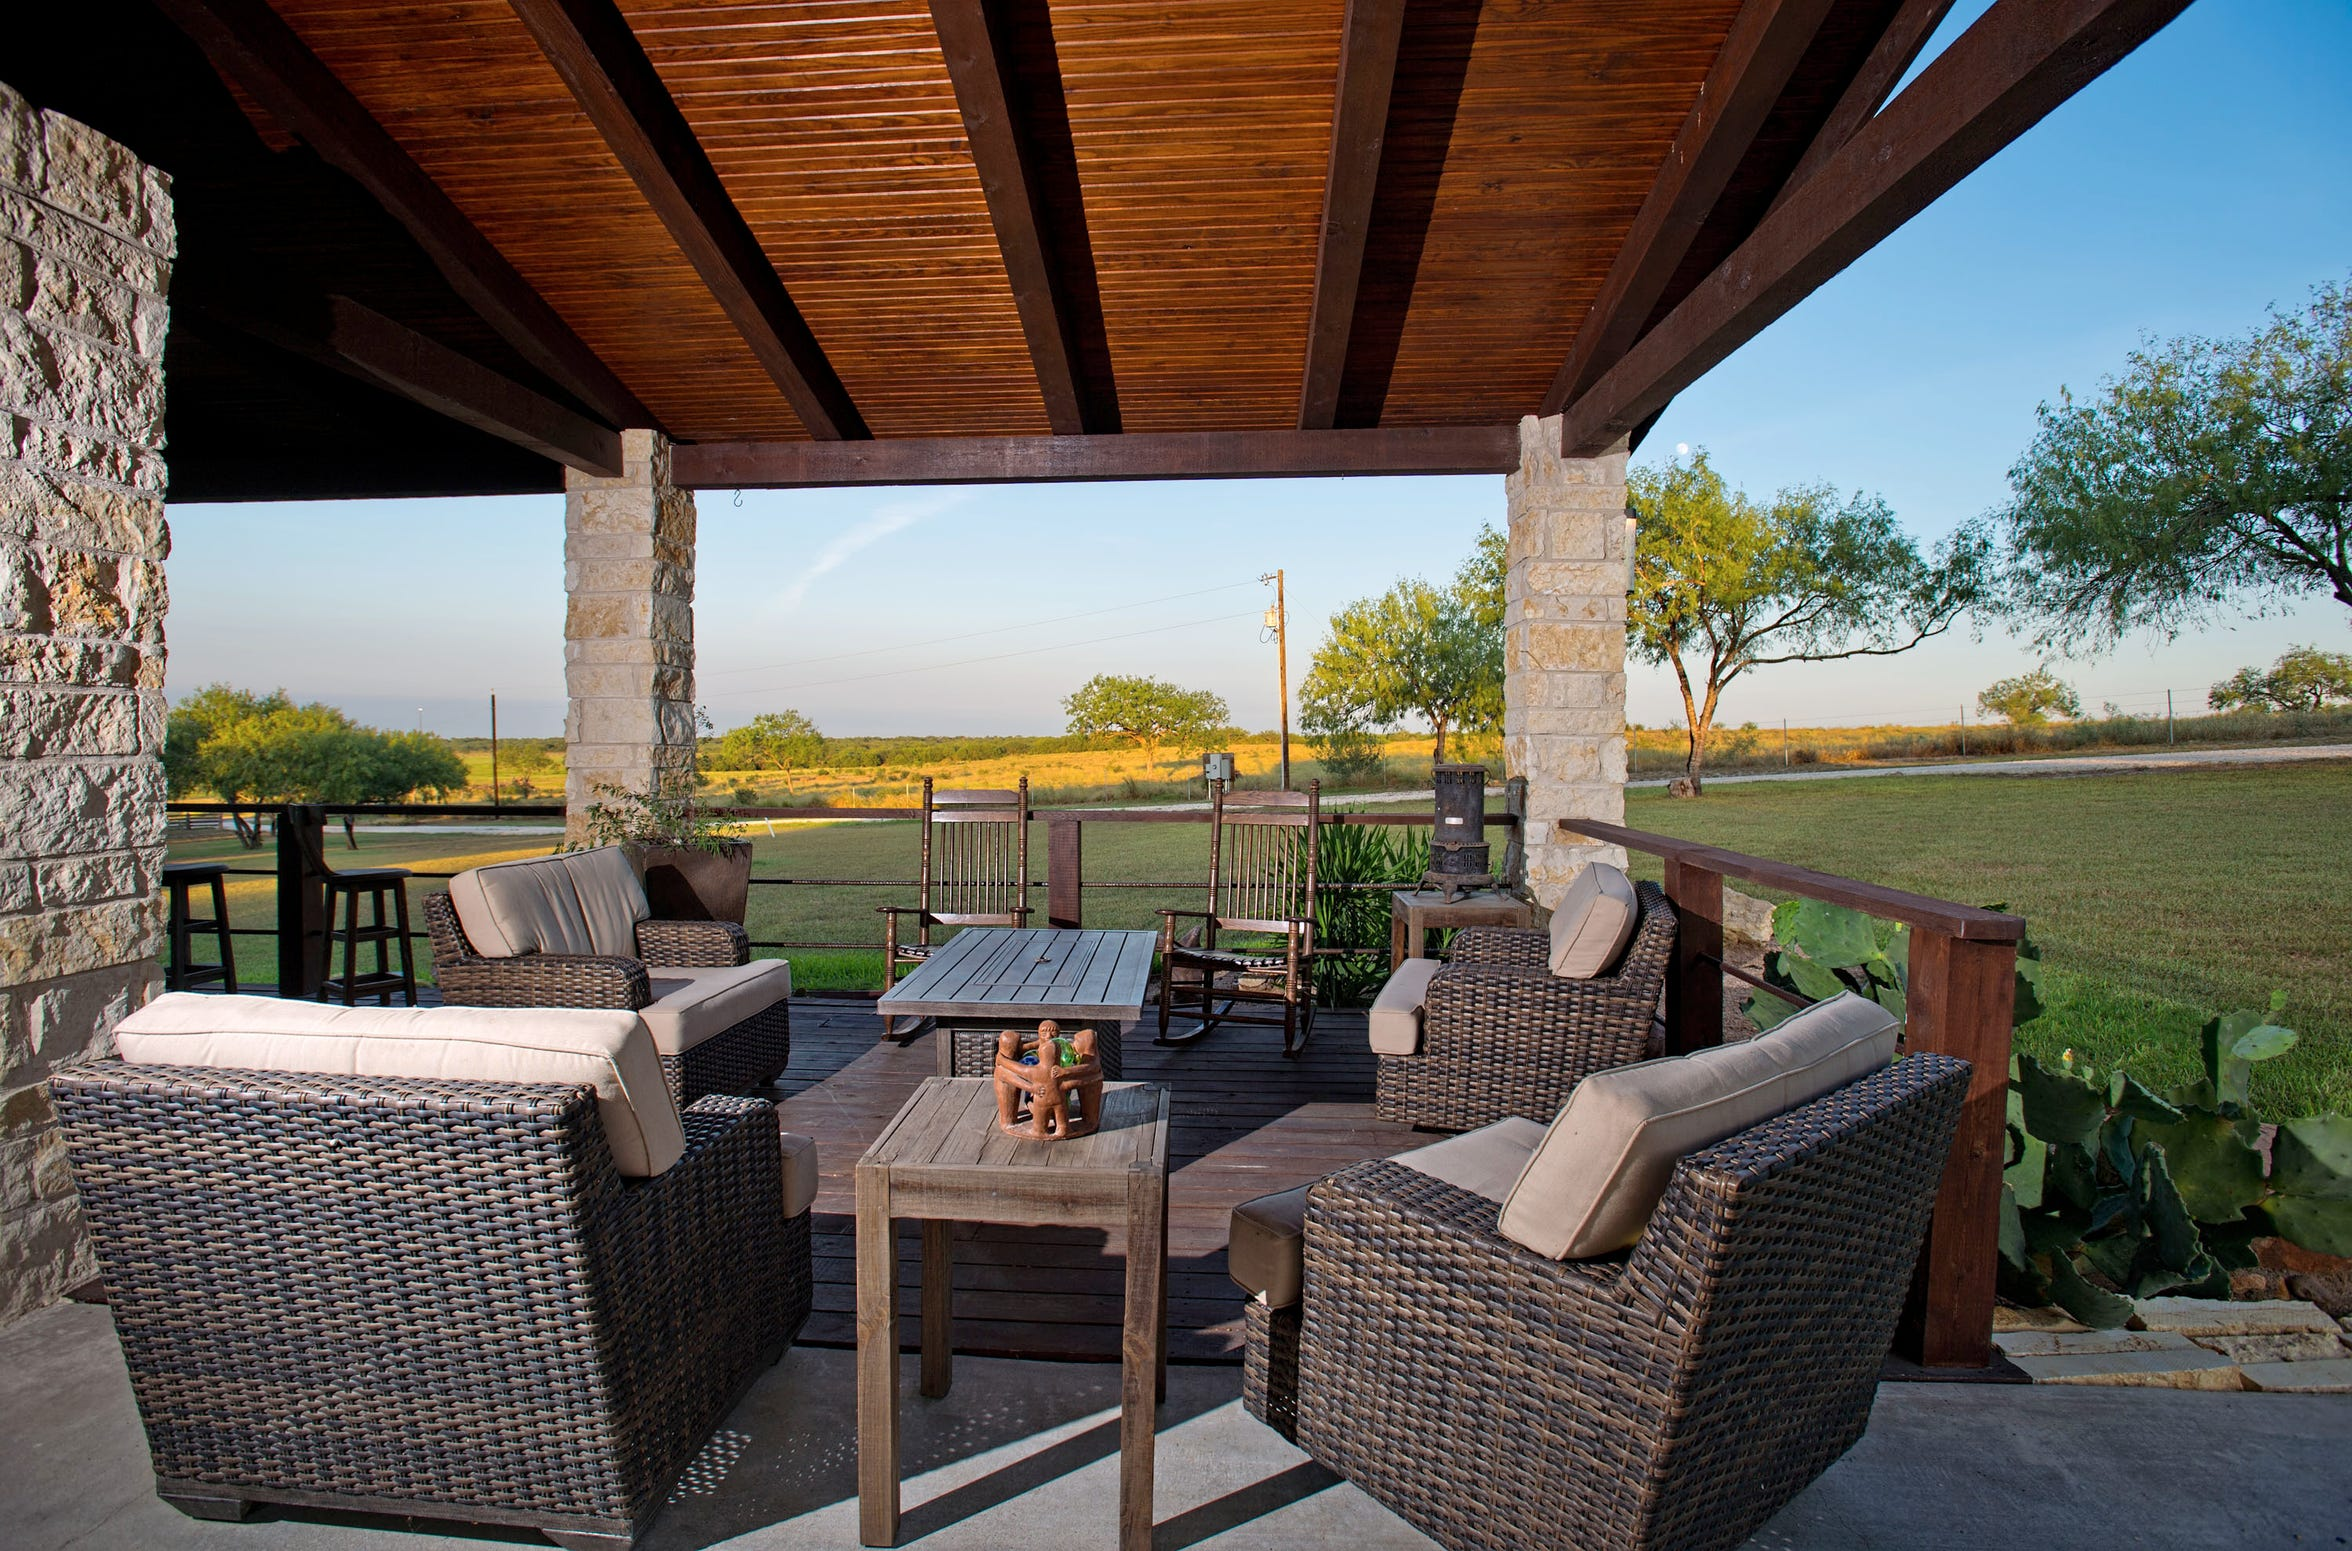 A peaceful spot to relax and enjoy the outdoors on the warp around porch overlooking the 3.33 acre mesquite tree covered lot.